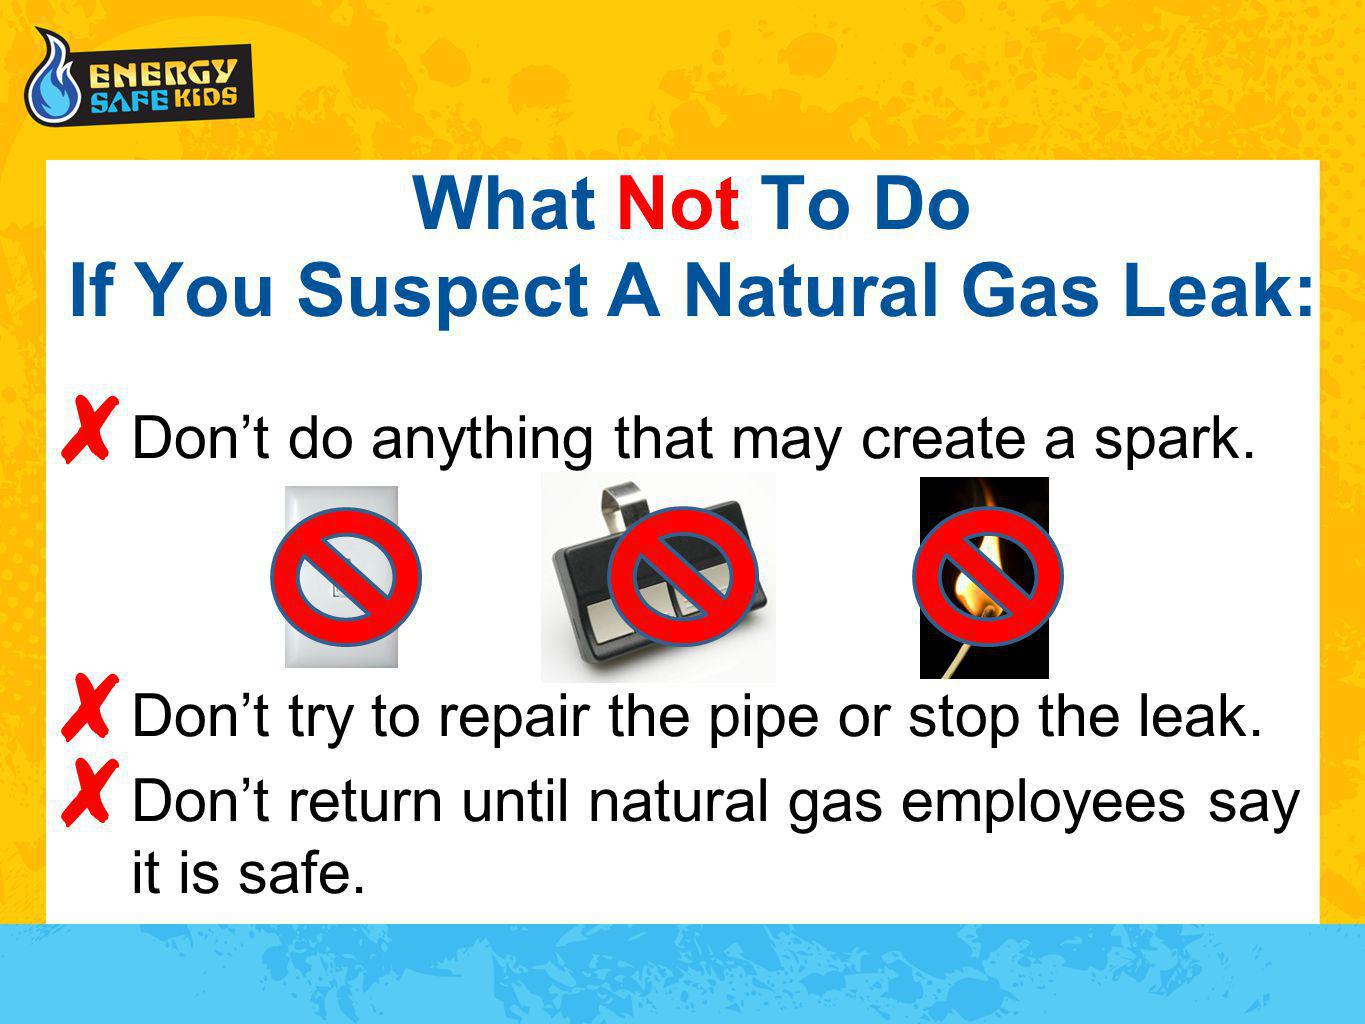 What Not To Do If You Suspect A Natural Gas Leak: Dont do anything that may create a spark. Dont try to repair the pipe or stop the leak. Dont return